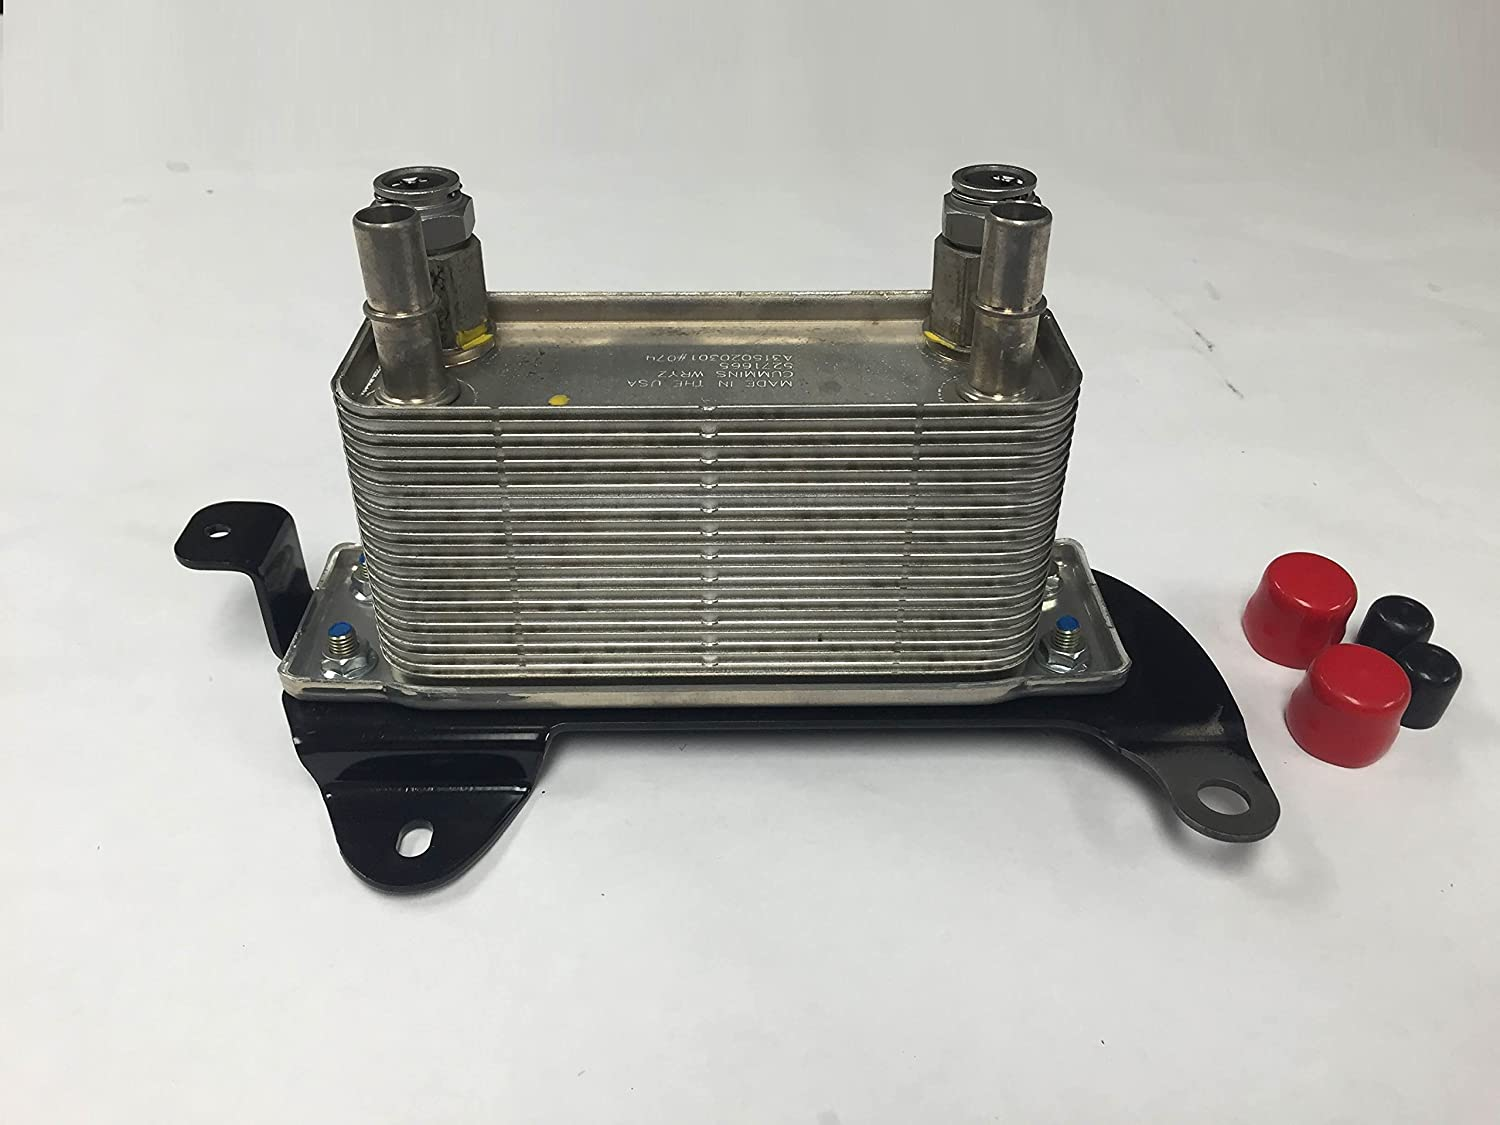 NEW Replacement 68139111AA TRANSMISSION OIL COOLER for DODGE RAM 2500 3500 DIESEL 6.7L American Cooling Solutions